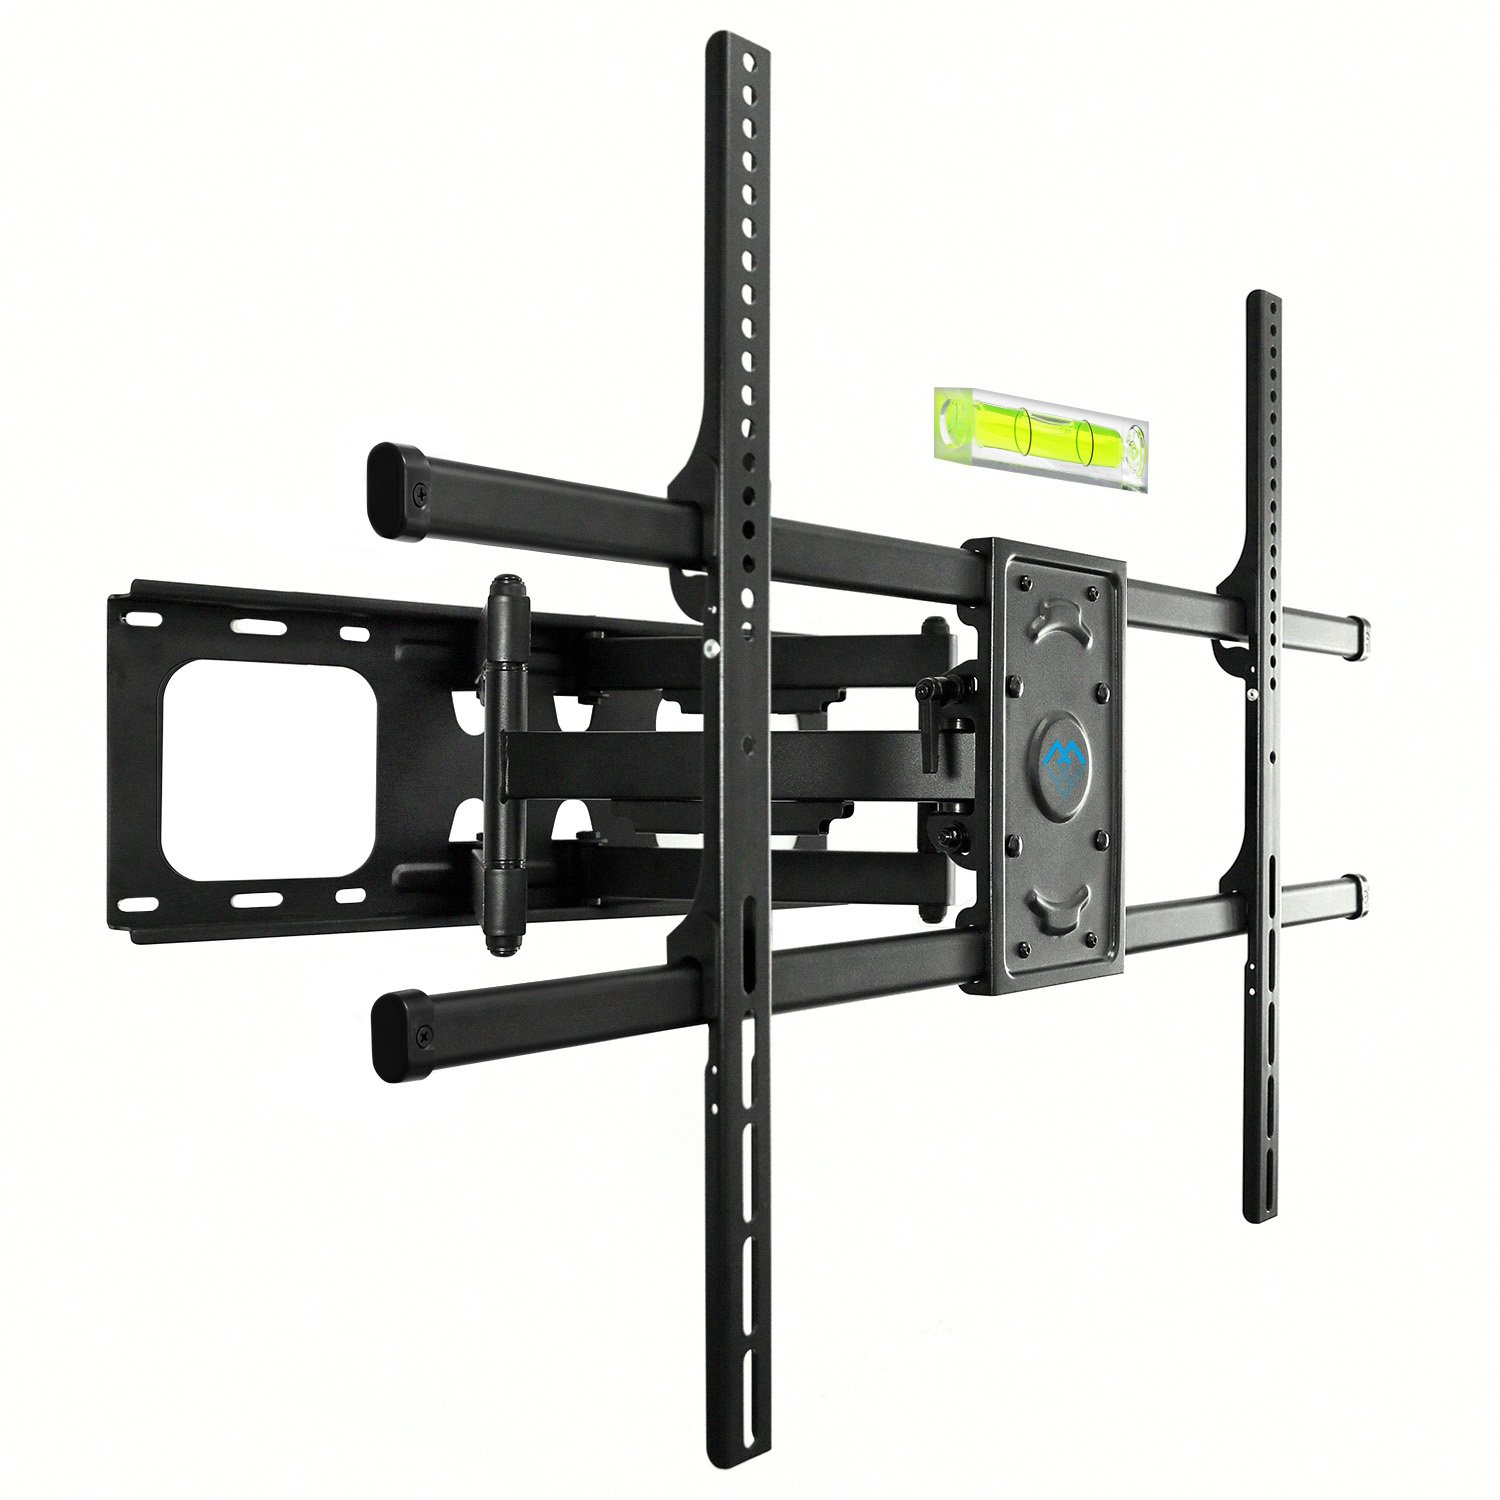 PERLESMITH TV Wall Mount Bracket Full Motion, Tilts, Swivels Most 50-90 inch LED LCD OLED Flat Screen Plasma TVs Dual Articulating Arms, Holds up to 165lbs VESA 800x600mm,Max Stud Spacing 24''